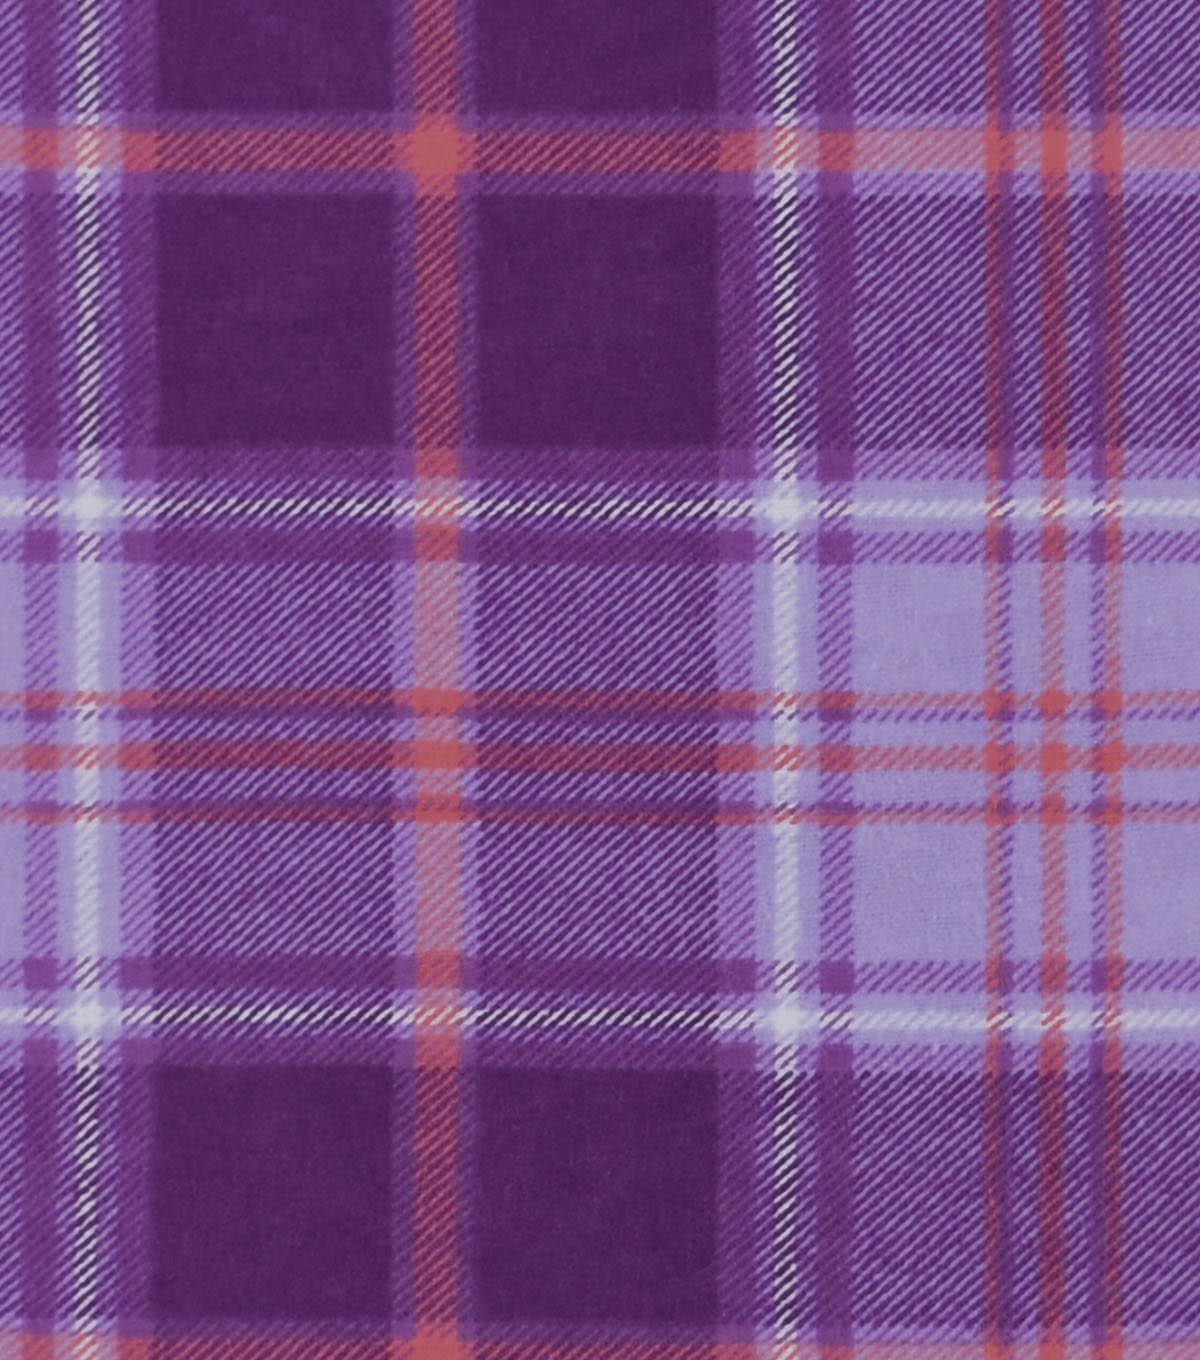 Snuggle Flannel Fabric -Sassy Warm Plaid